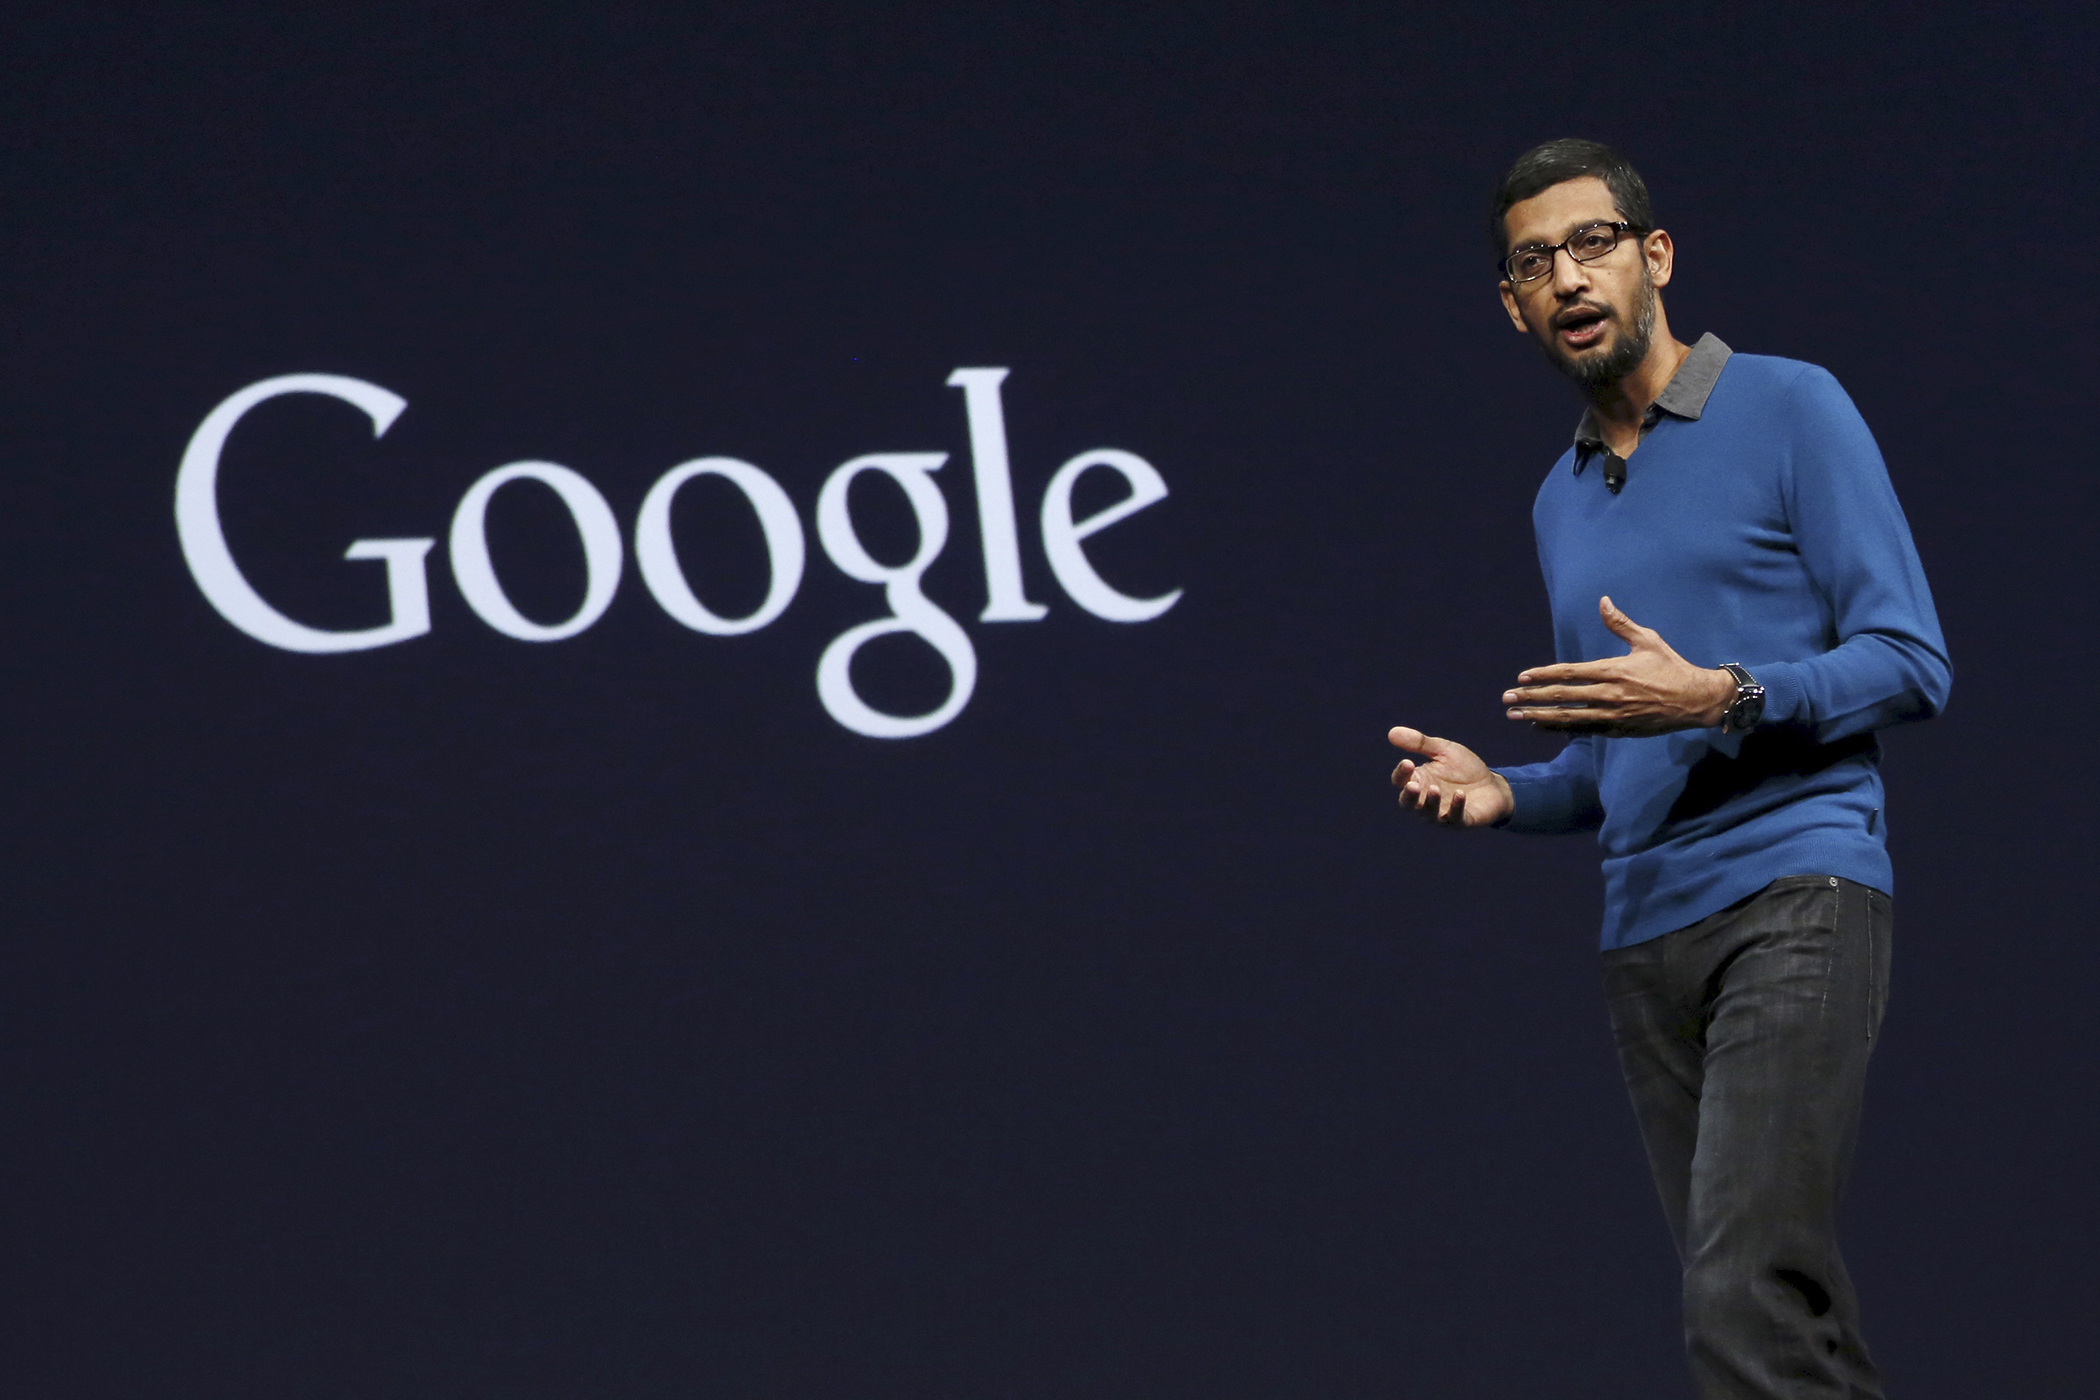 Sundar Pichai, Senior Vice President for Products at Google